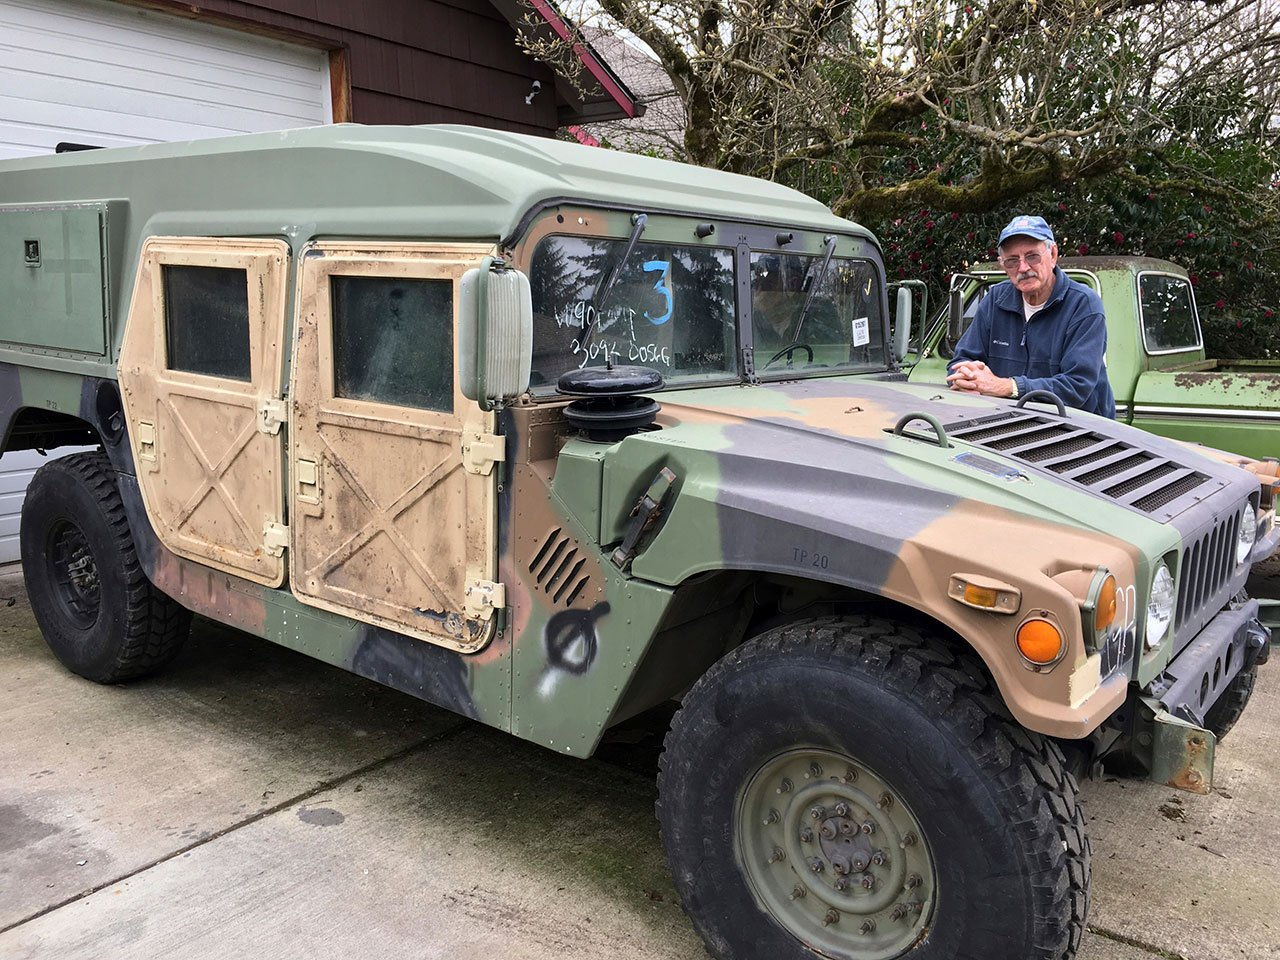 Oregon could be the first state to allow street-use of retired military Humvees should state lawmakers approve a bill that was proposed at the request of Stayton Mayor Hank Porter, who wants to tow war veterans in  parades. (AP Photo/Kristena Hansen)